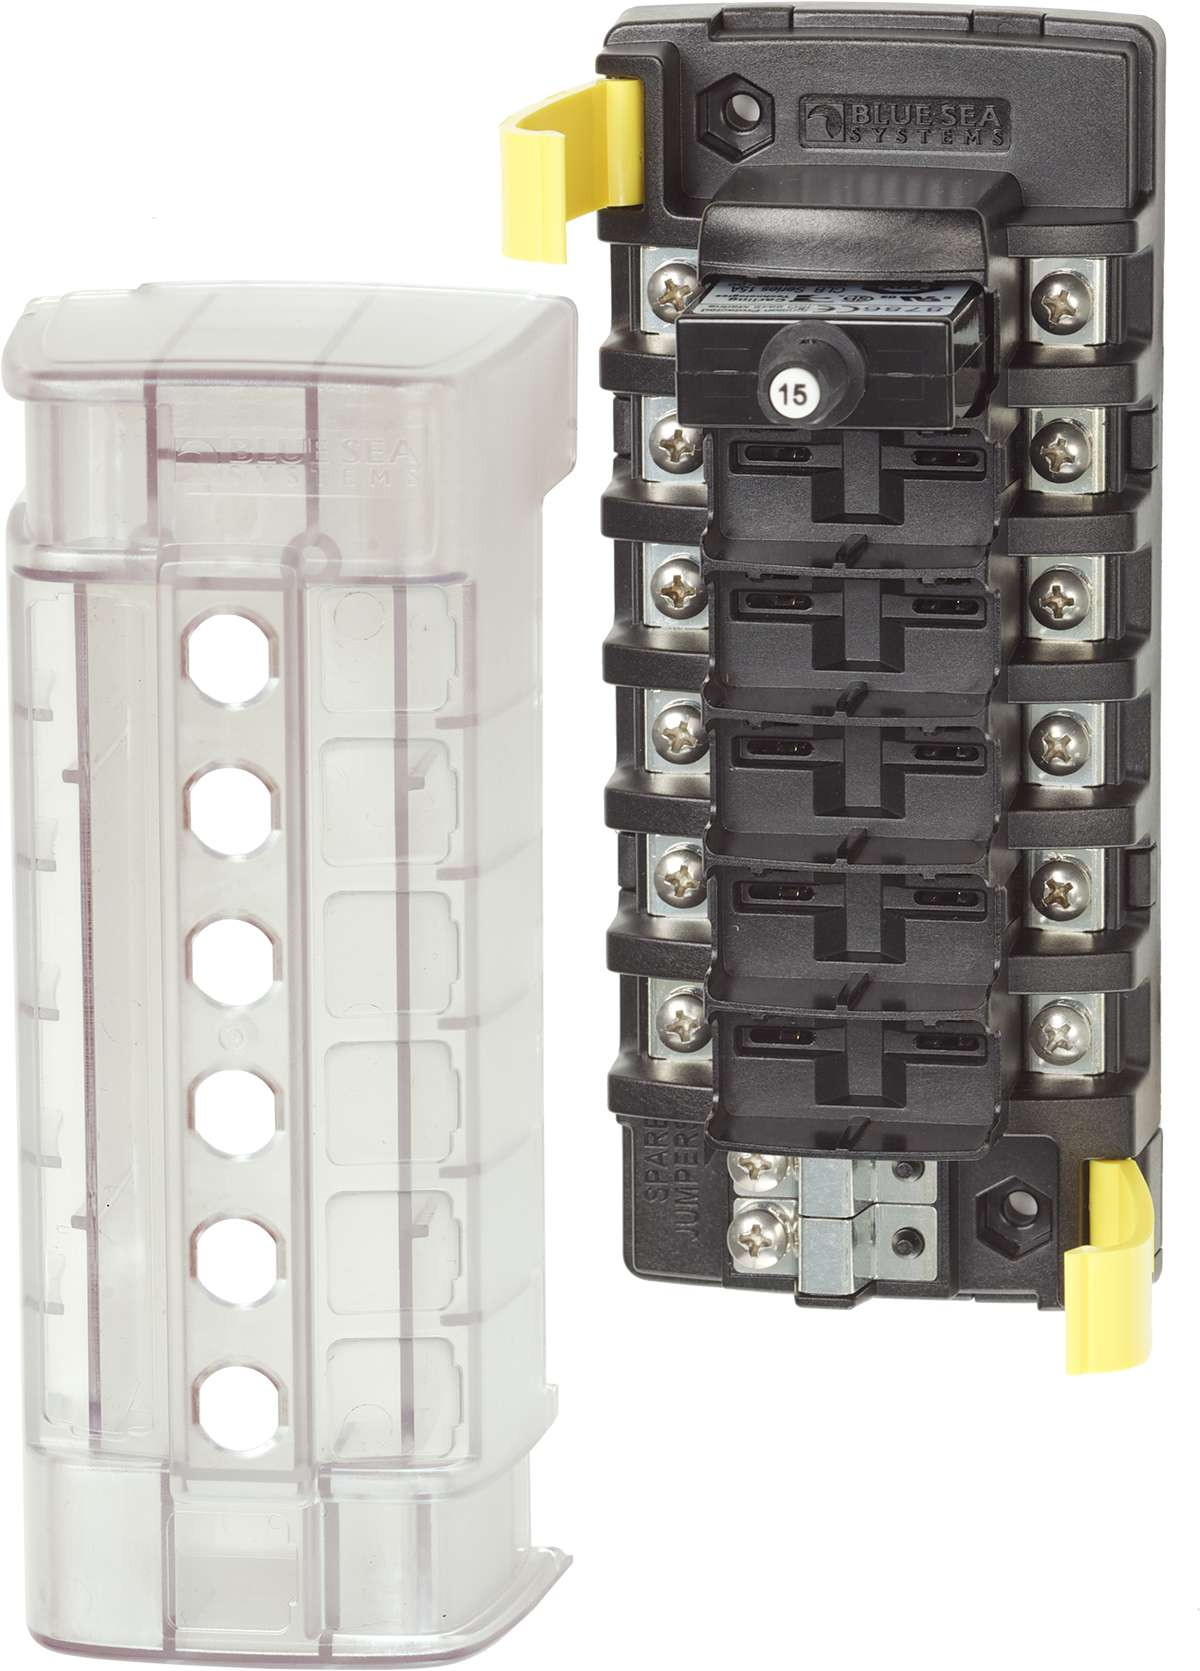 St Clb Circuit Breaker Block 6 Independent Circuits Blue Sea Systems Breakers Load Centers Fuses Miniature Product Image Click For Larger And Other Images Blocks